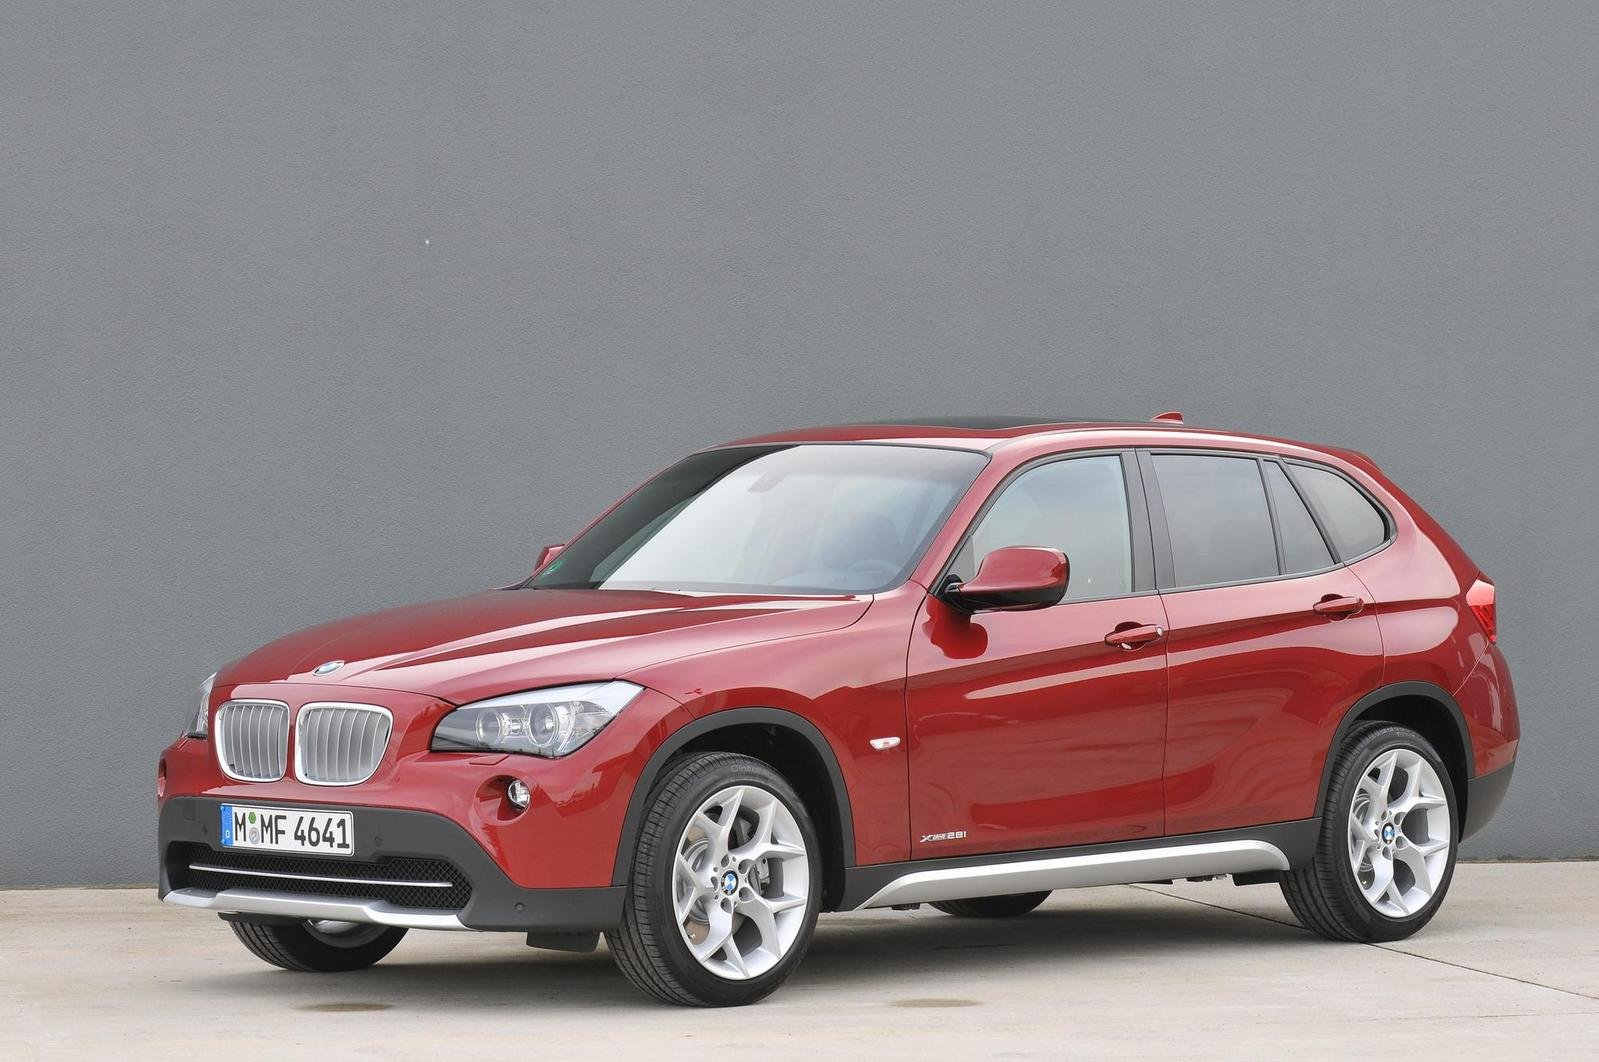 2010 bmw x1 xdrive28i and 2_1600x0w bmw x1 reviews, specs & prices top speed  at edmiracle.co